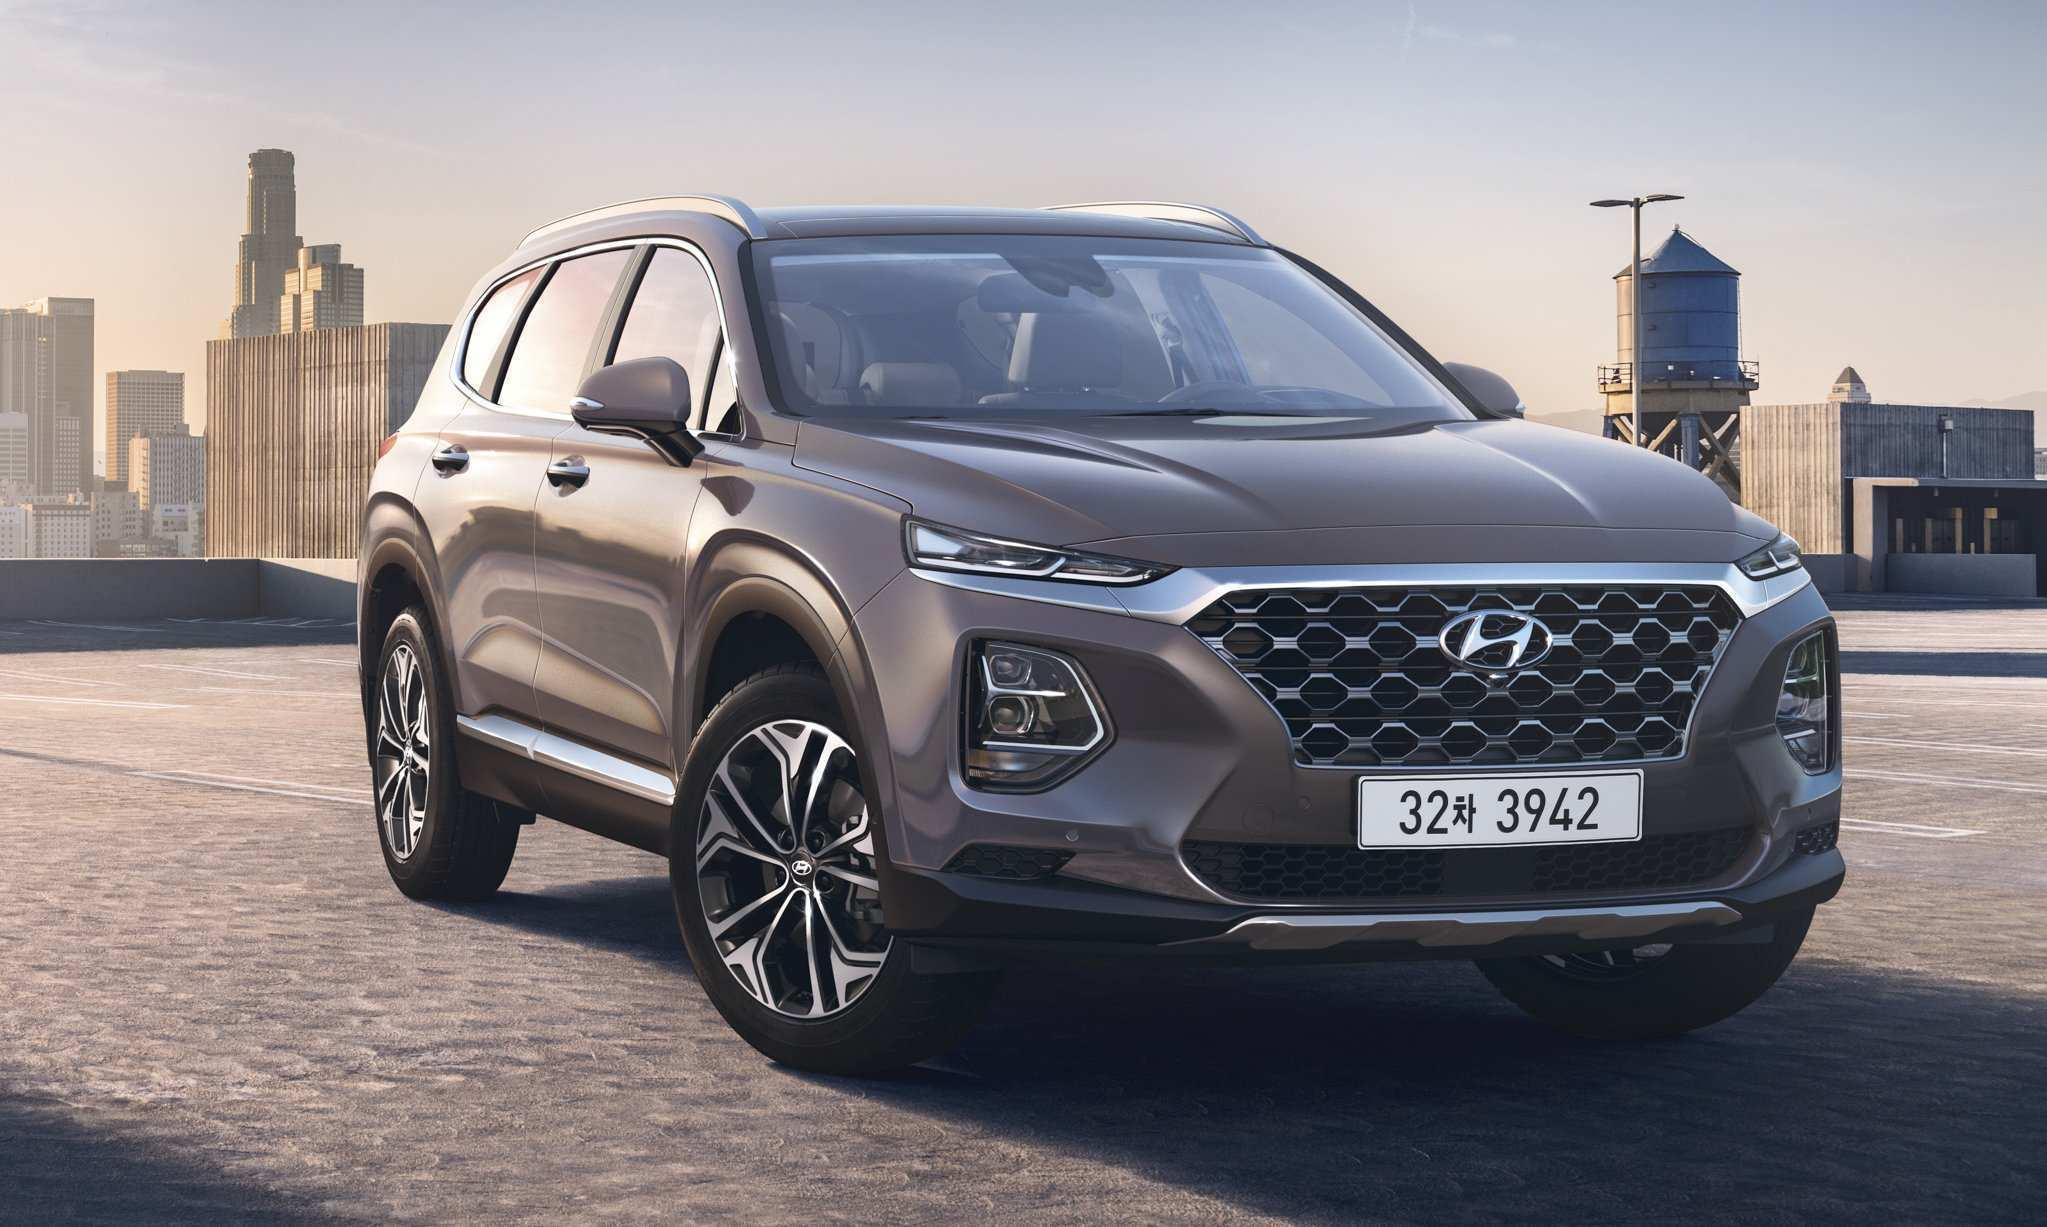 54 Best The Santa Fe Kia 2019 Rumors Speed Test